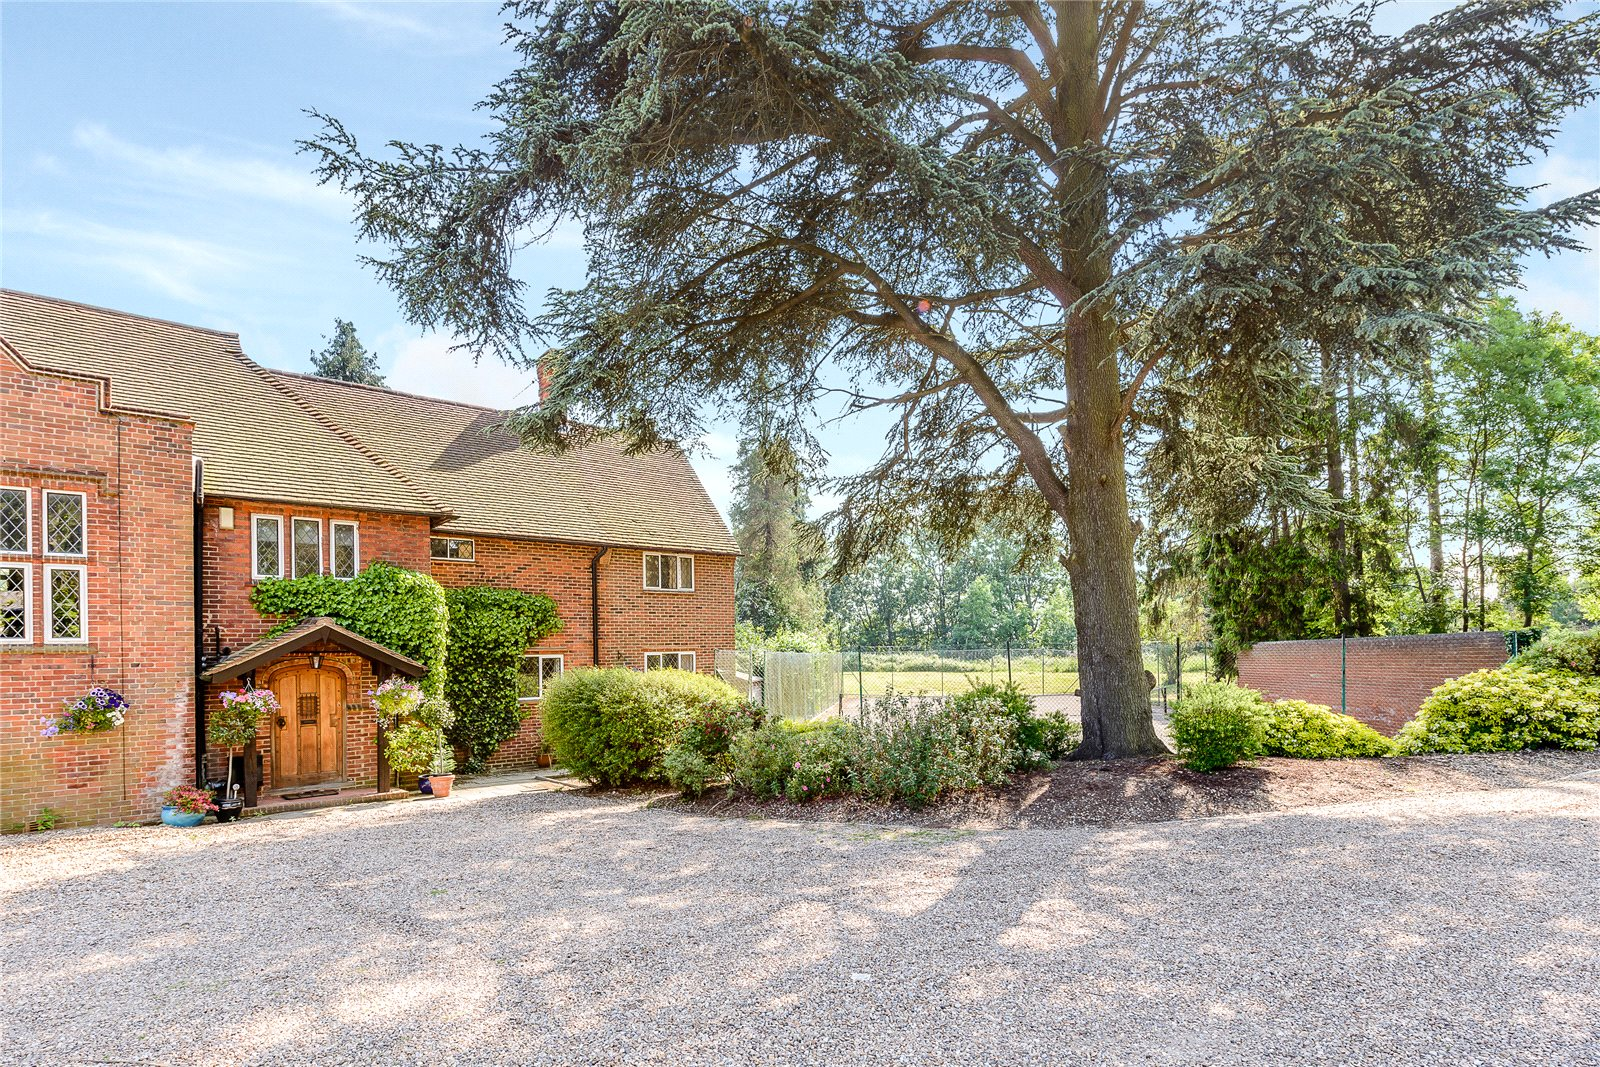 Additional photo for property listing at Fulmer Lane, Fulmer, Buckinghamshire, SL3 Fulmer, 英格蘭